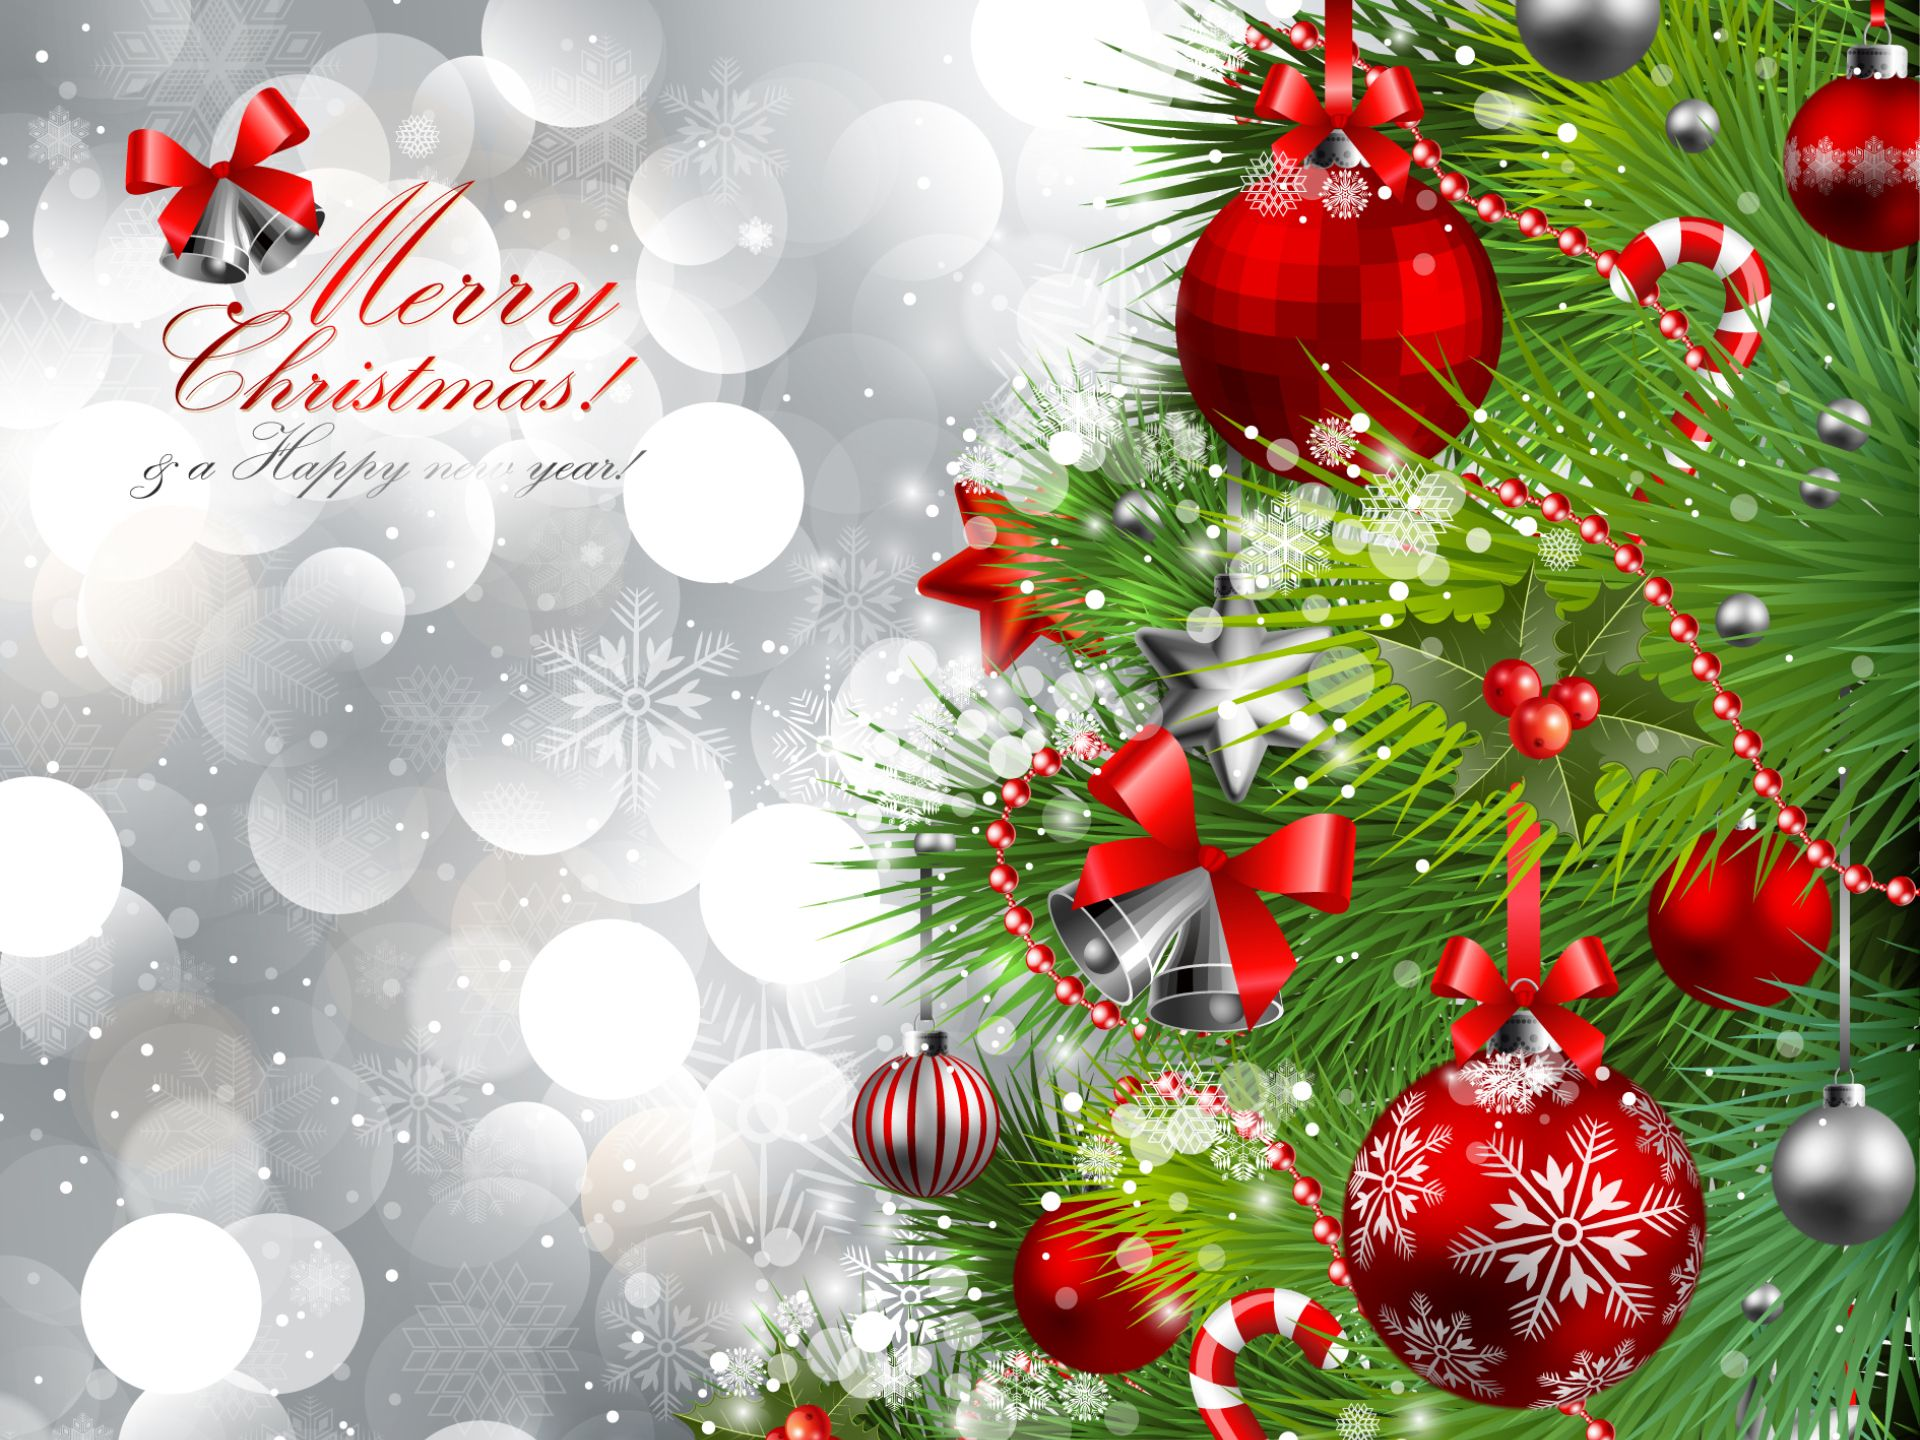 Christmas Wallpapers Cool Backgrounds Superb